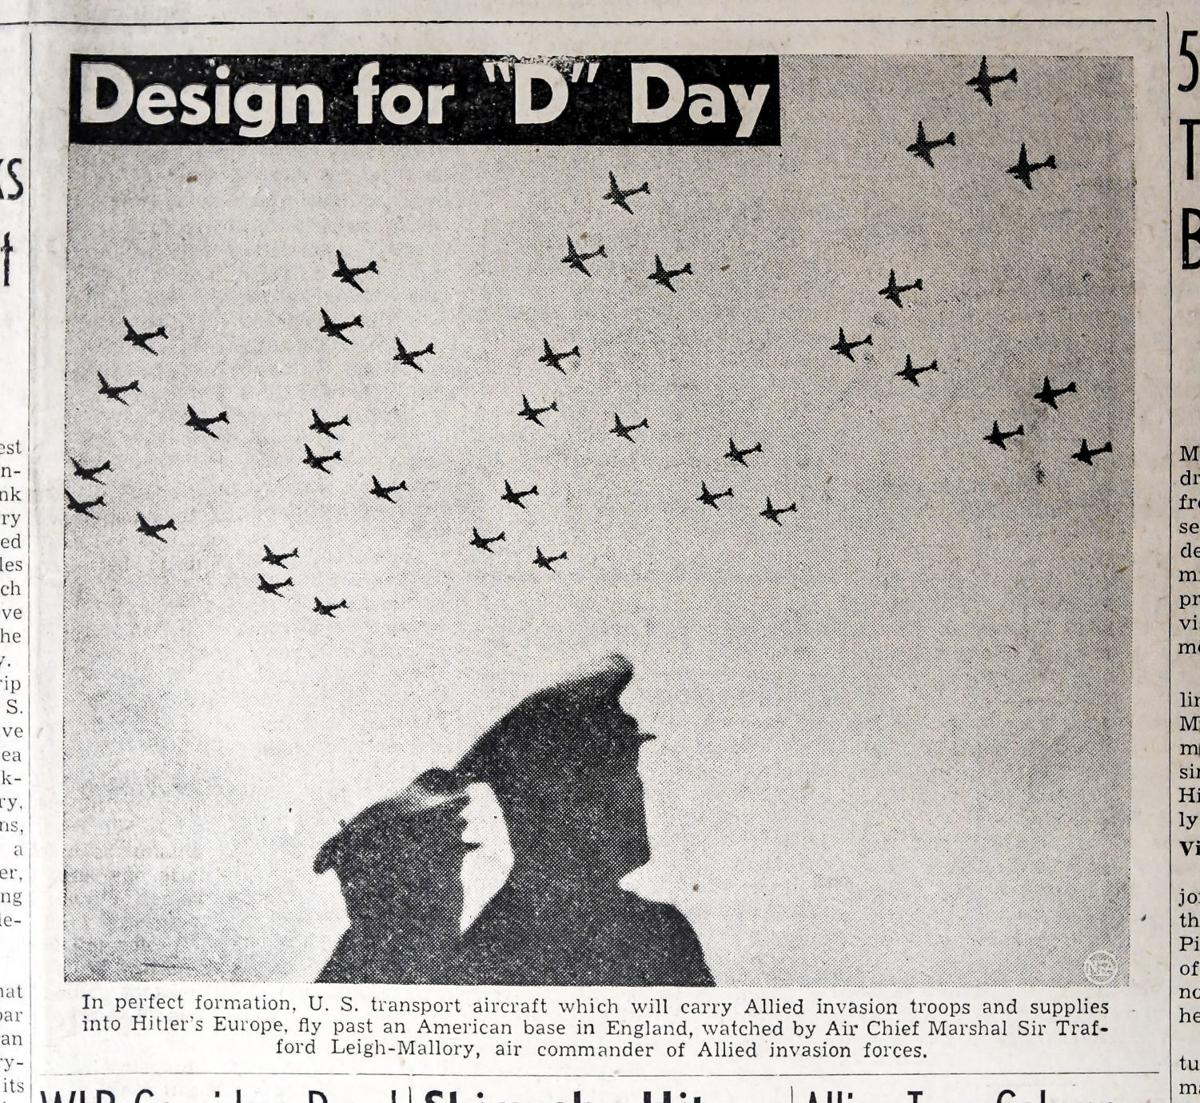 Gallery: D-Day Ads